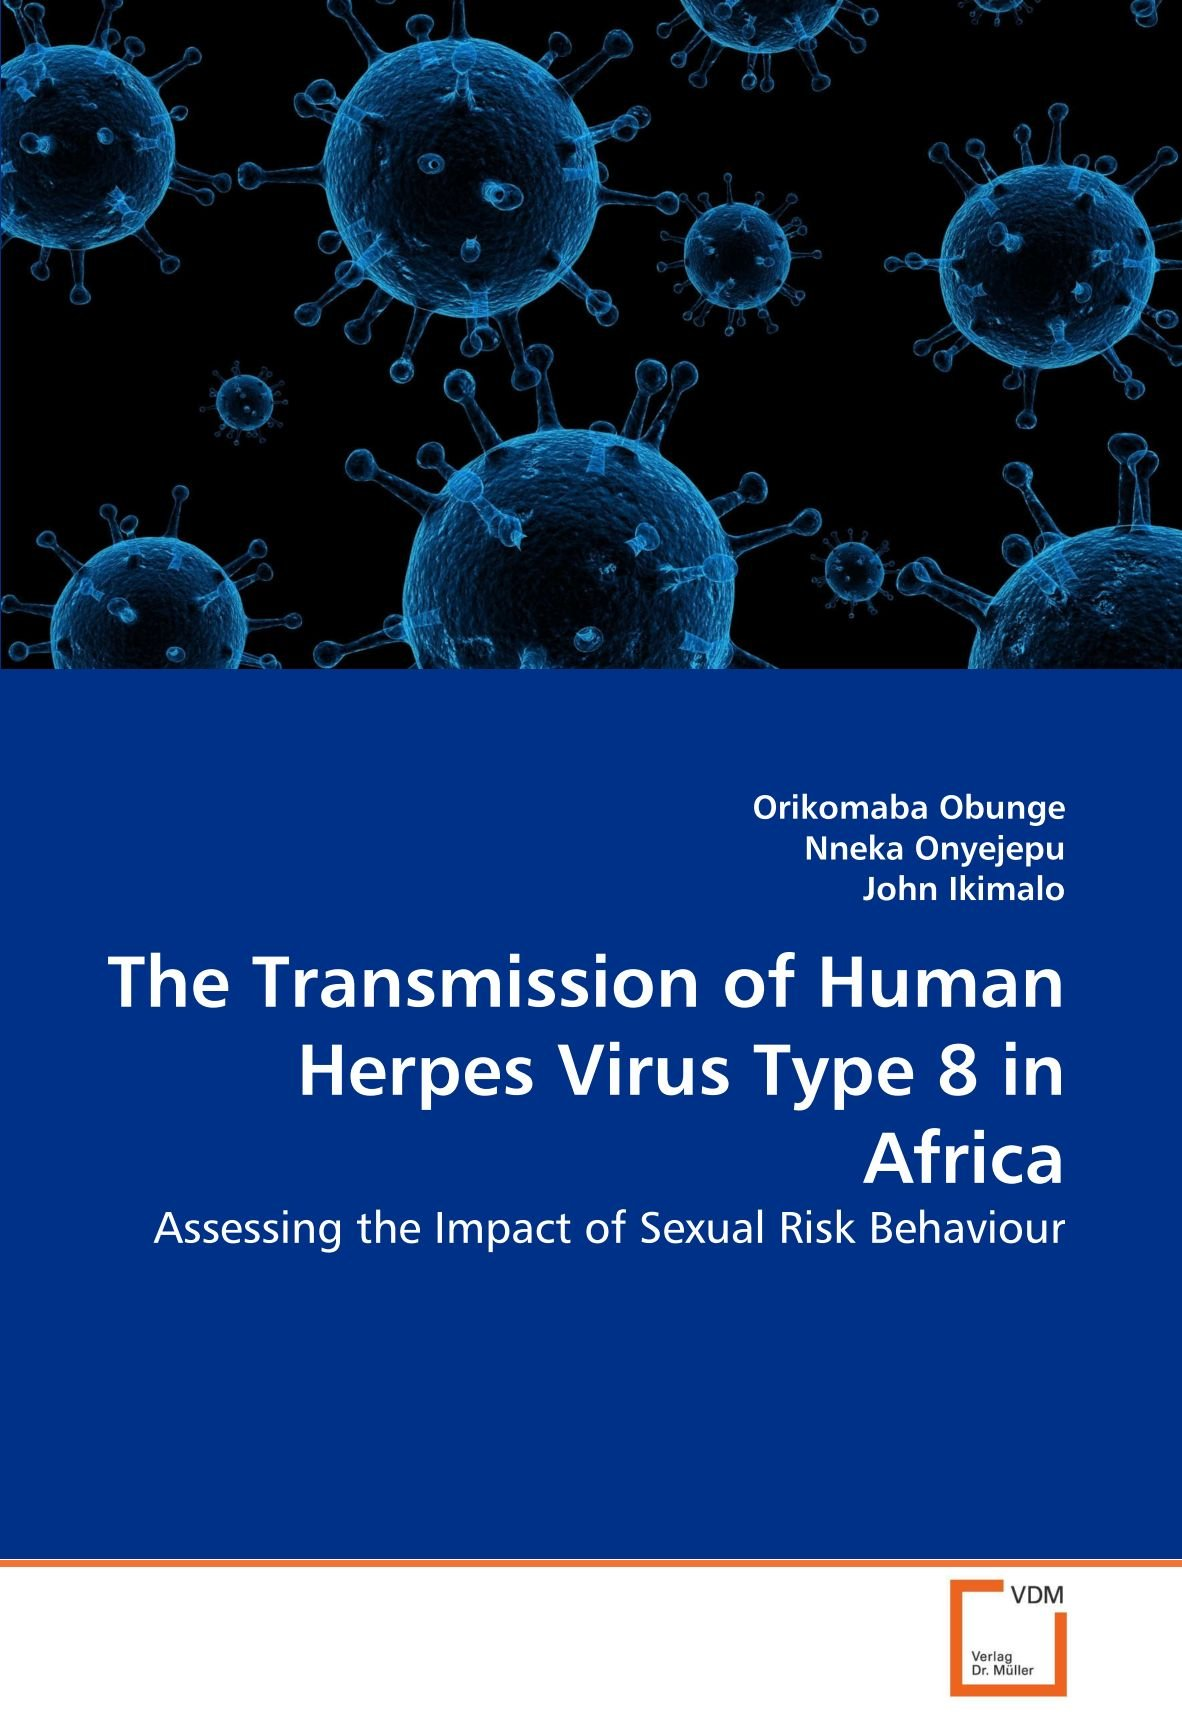 Download The Transmission of Human Herpes Virus Type 8 in Africa: Assessing the Impact of Sexual Risk Behaviour PDF